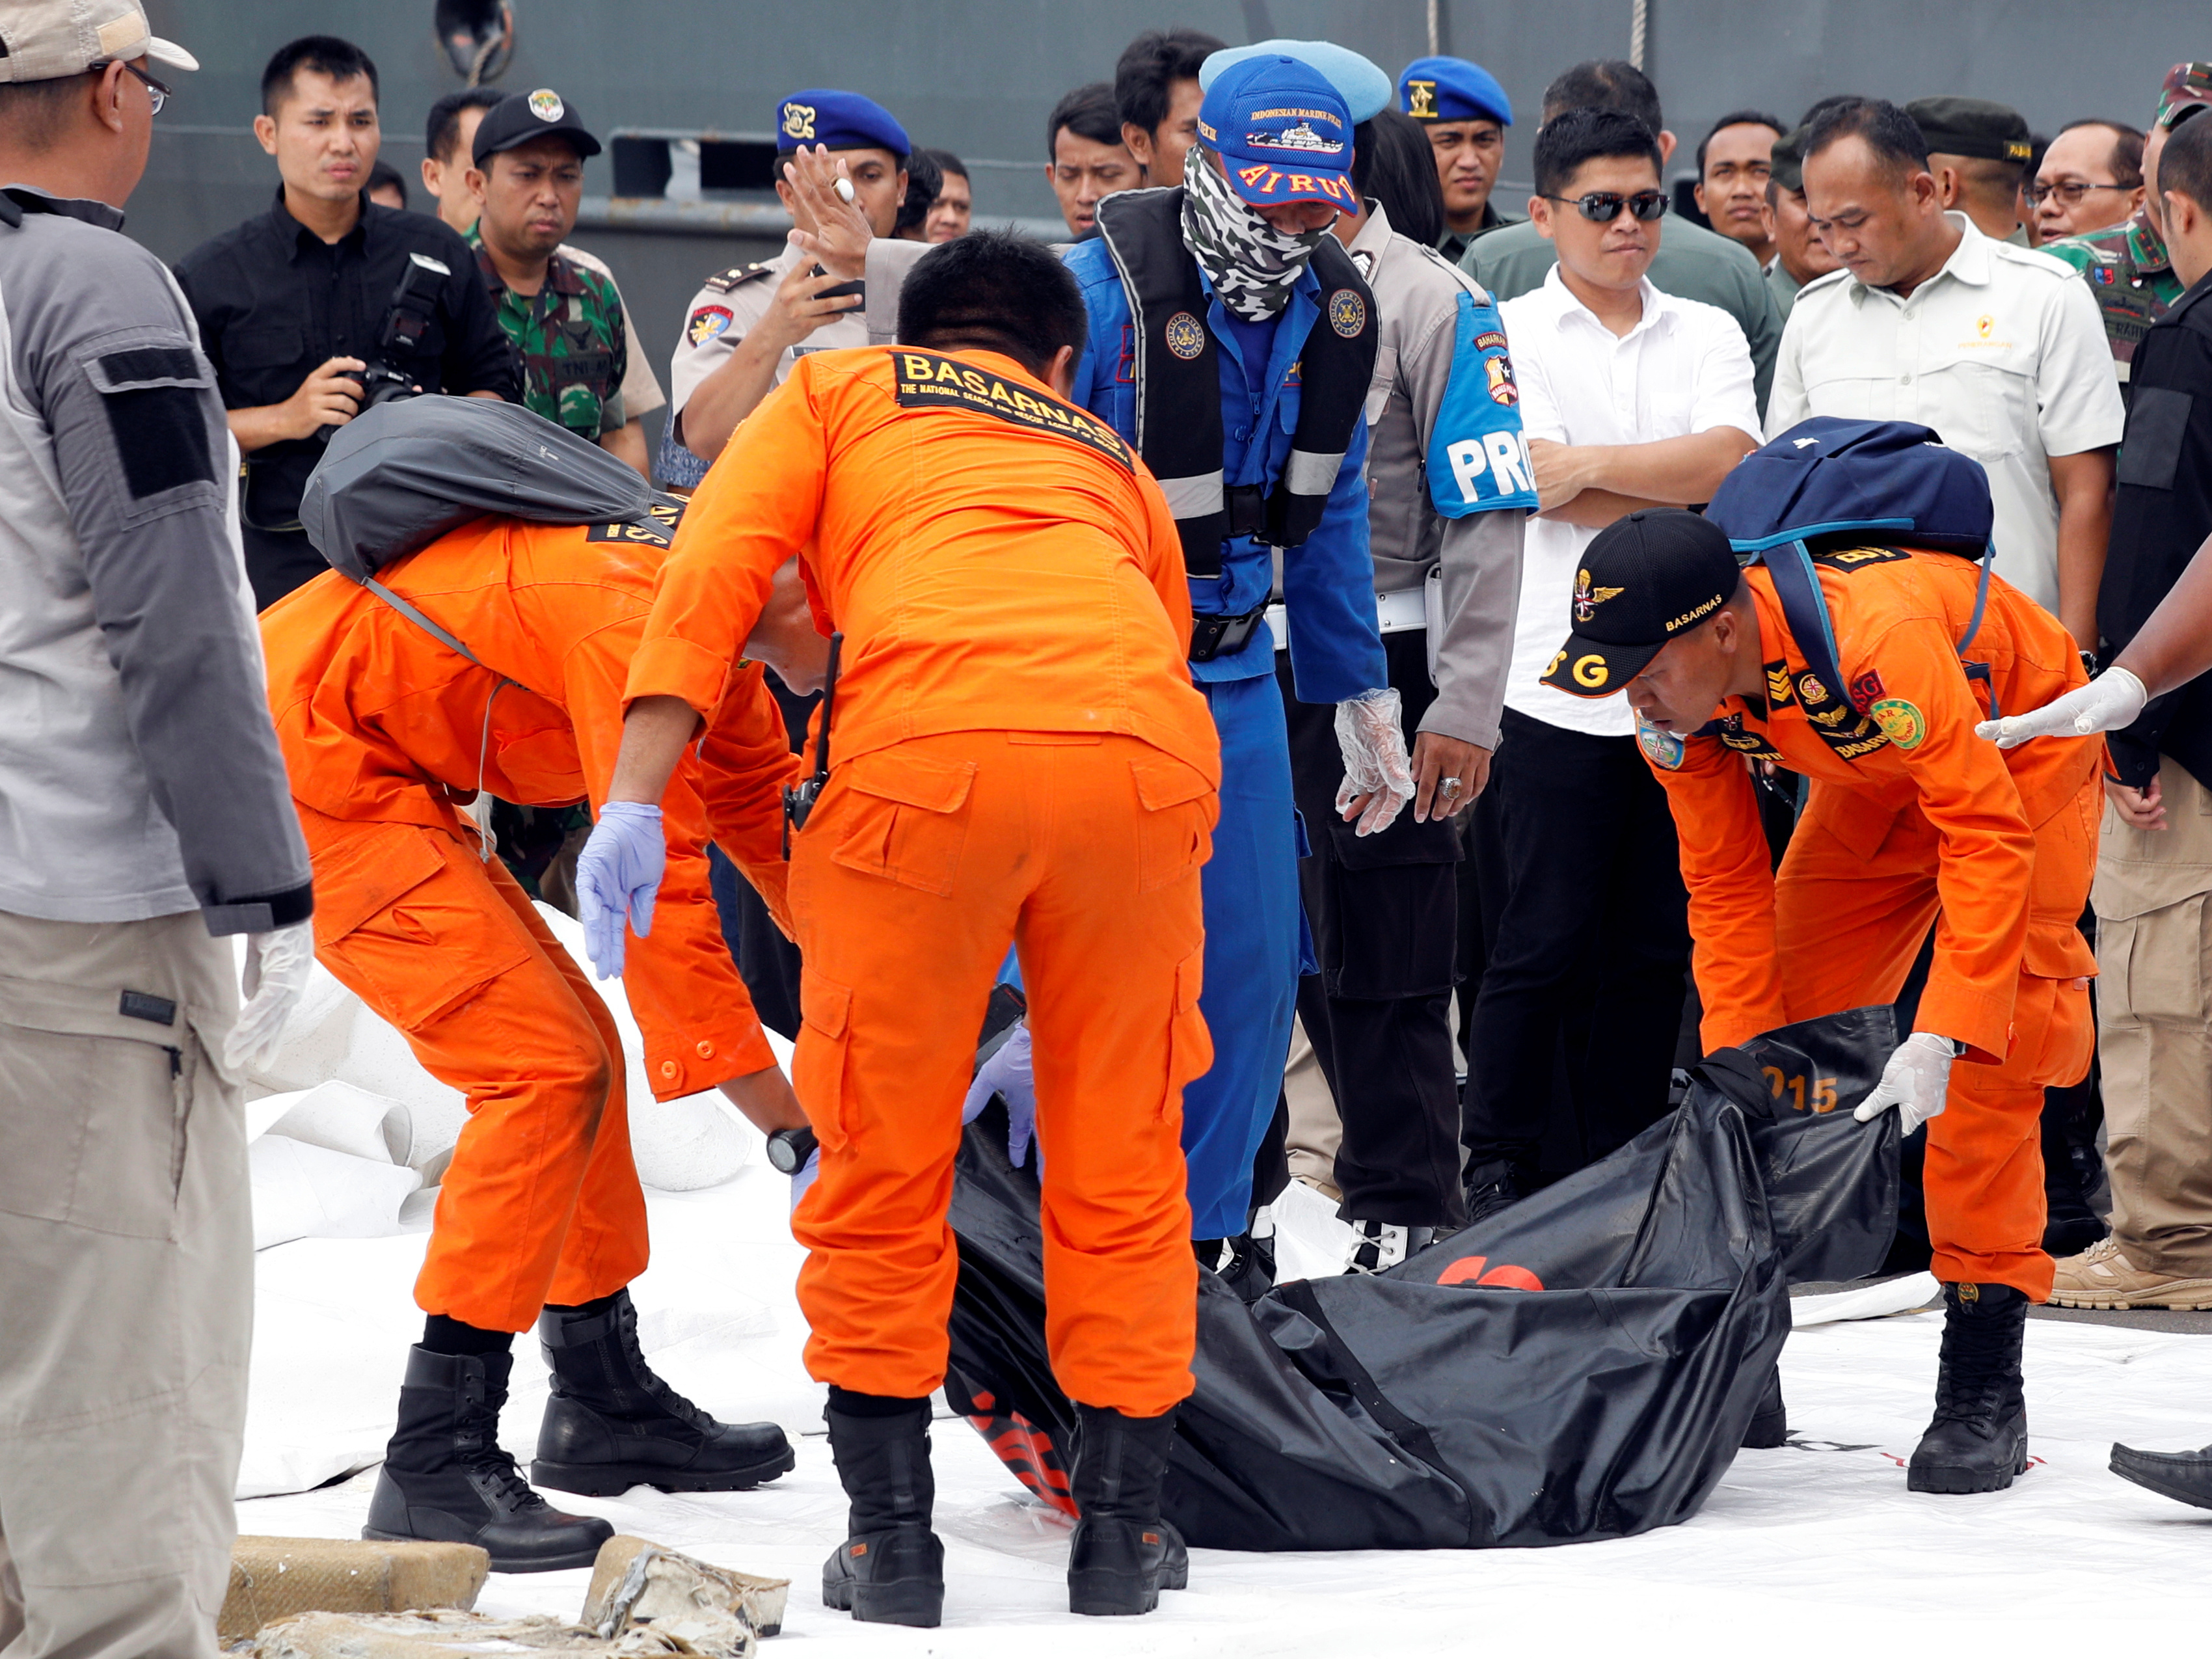 Rescue workers of crashed Lion Air flight JT610 carry a body bag off a boat at Tanjung Priok port in Jakarta, Indonesia, October 30, 2018. REUTERS/Edgar Su